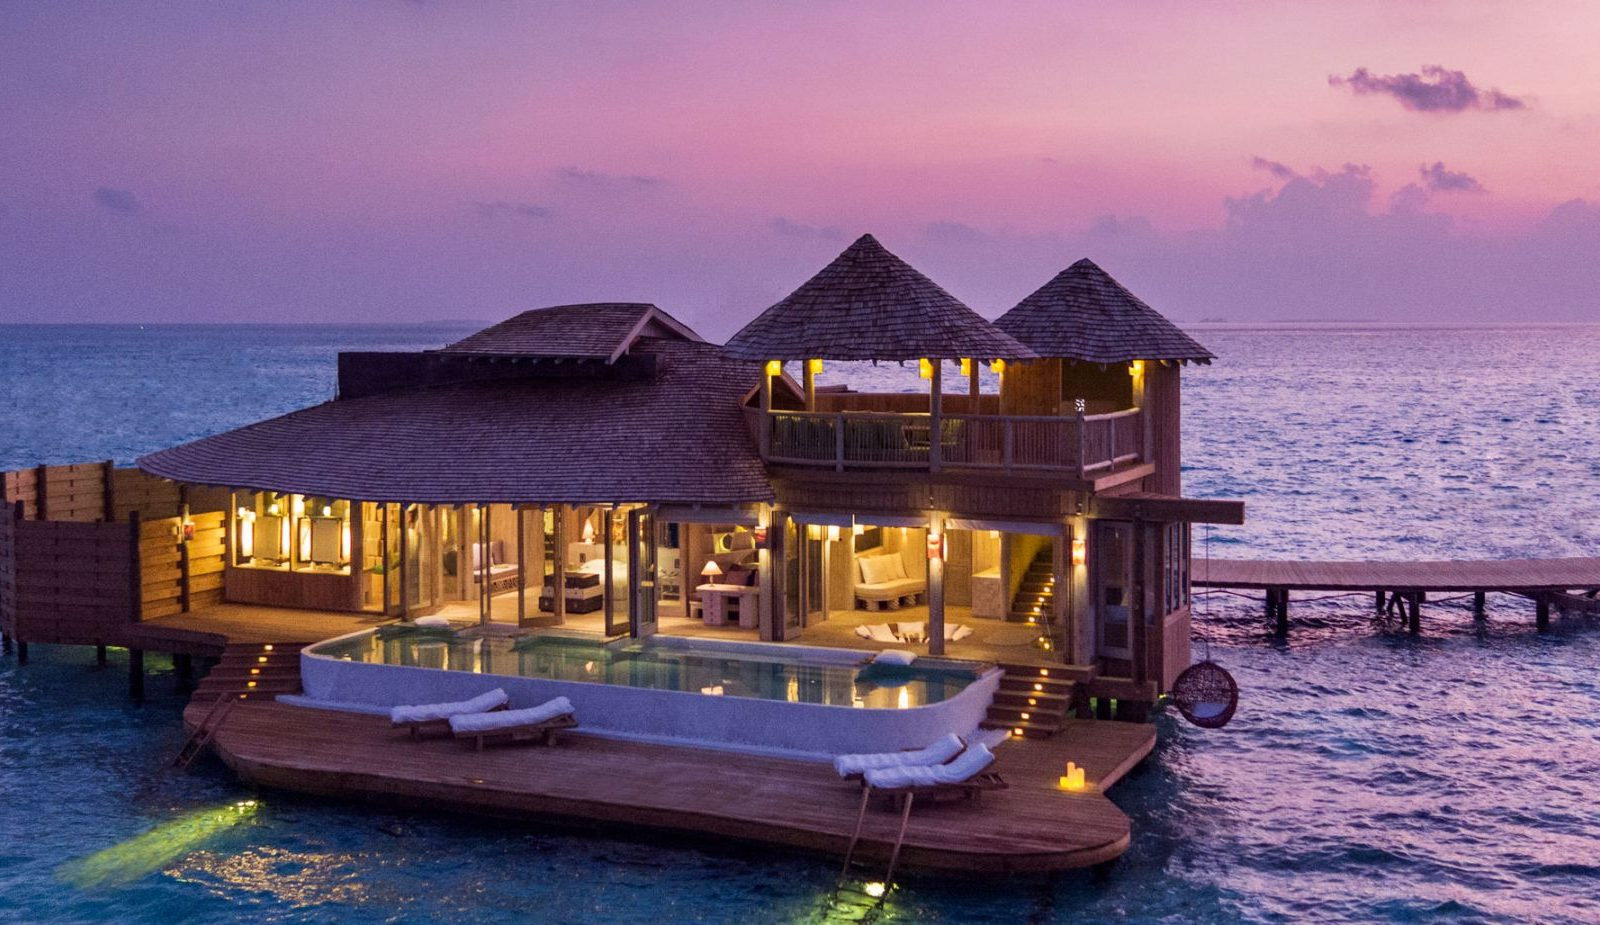 1-Bedroom-Overwater-Villa_Exterior_Night-View-by-Richard-Waite11-1600×925